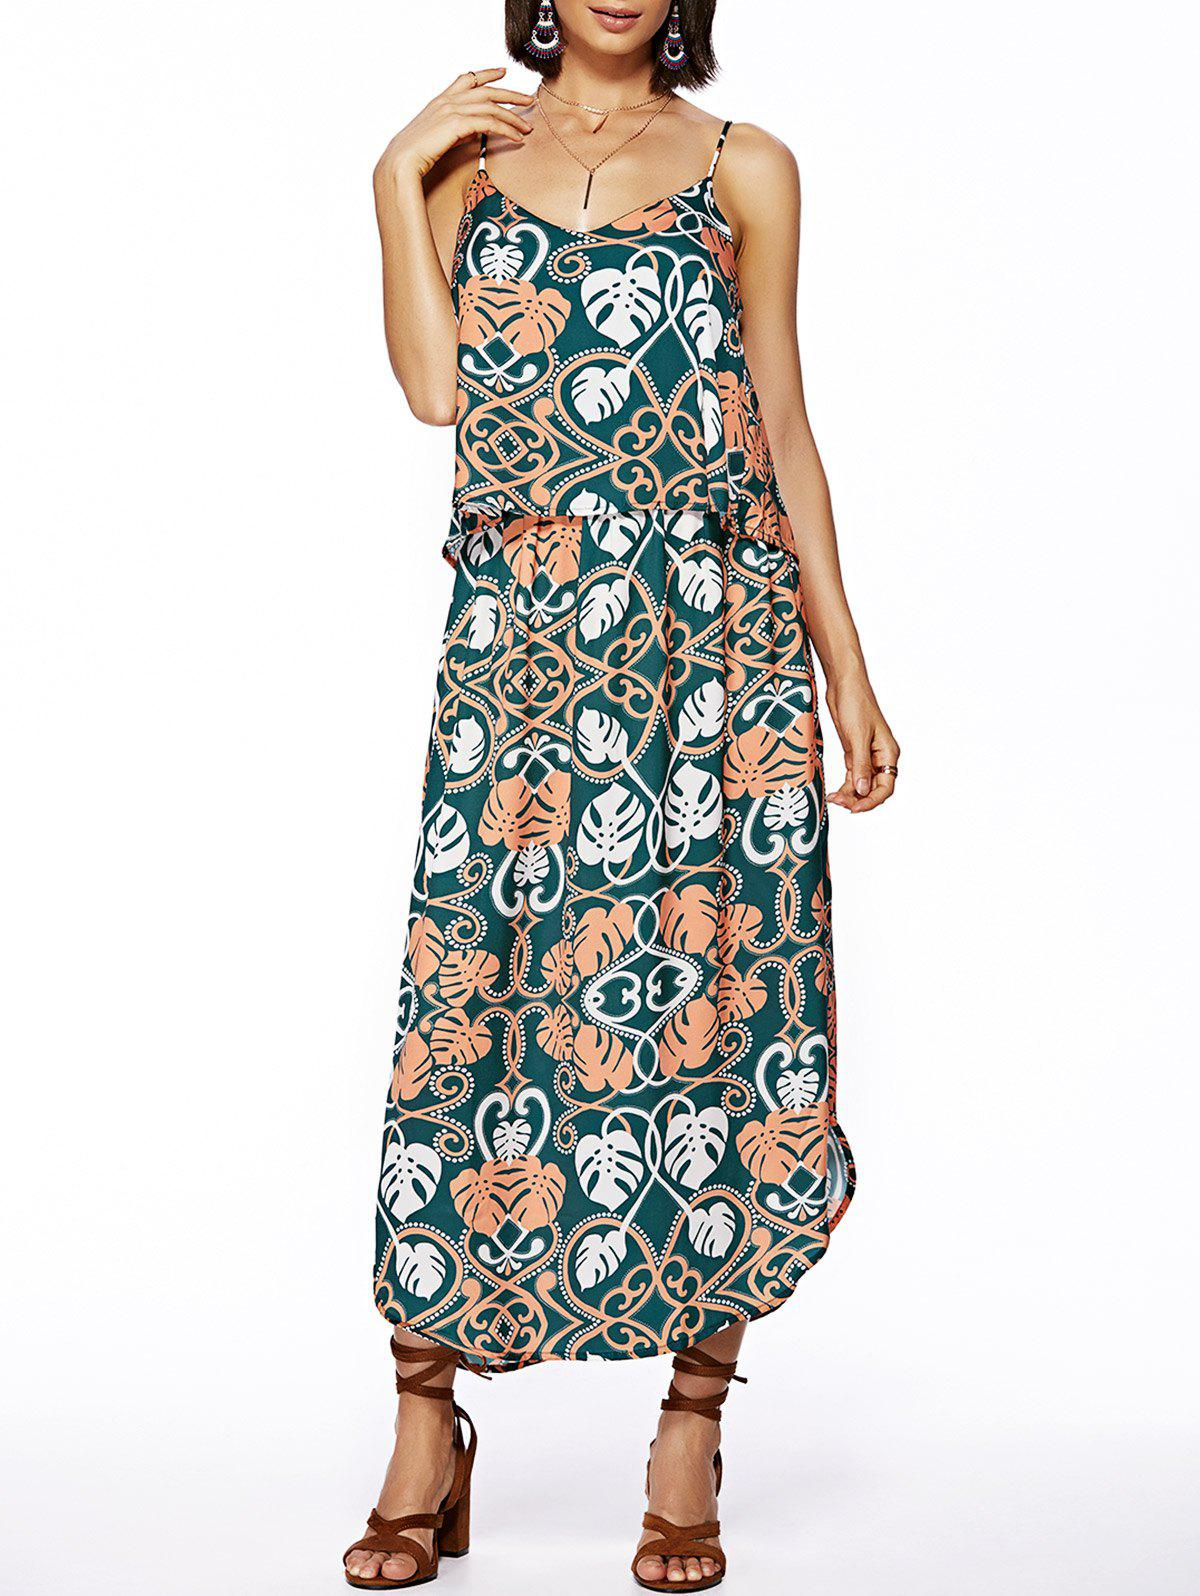 Bohemian Style Ethnic Print Spaghetti Strap Dress For Women